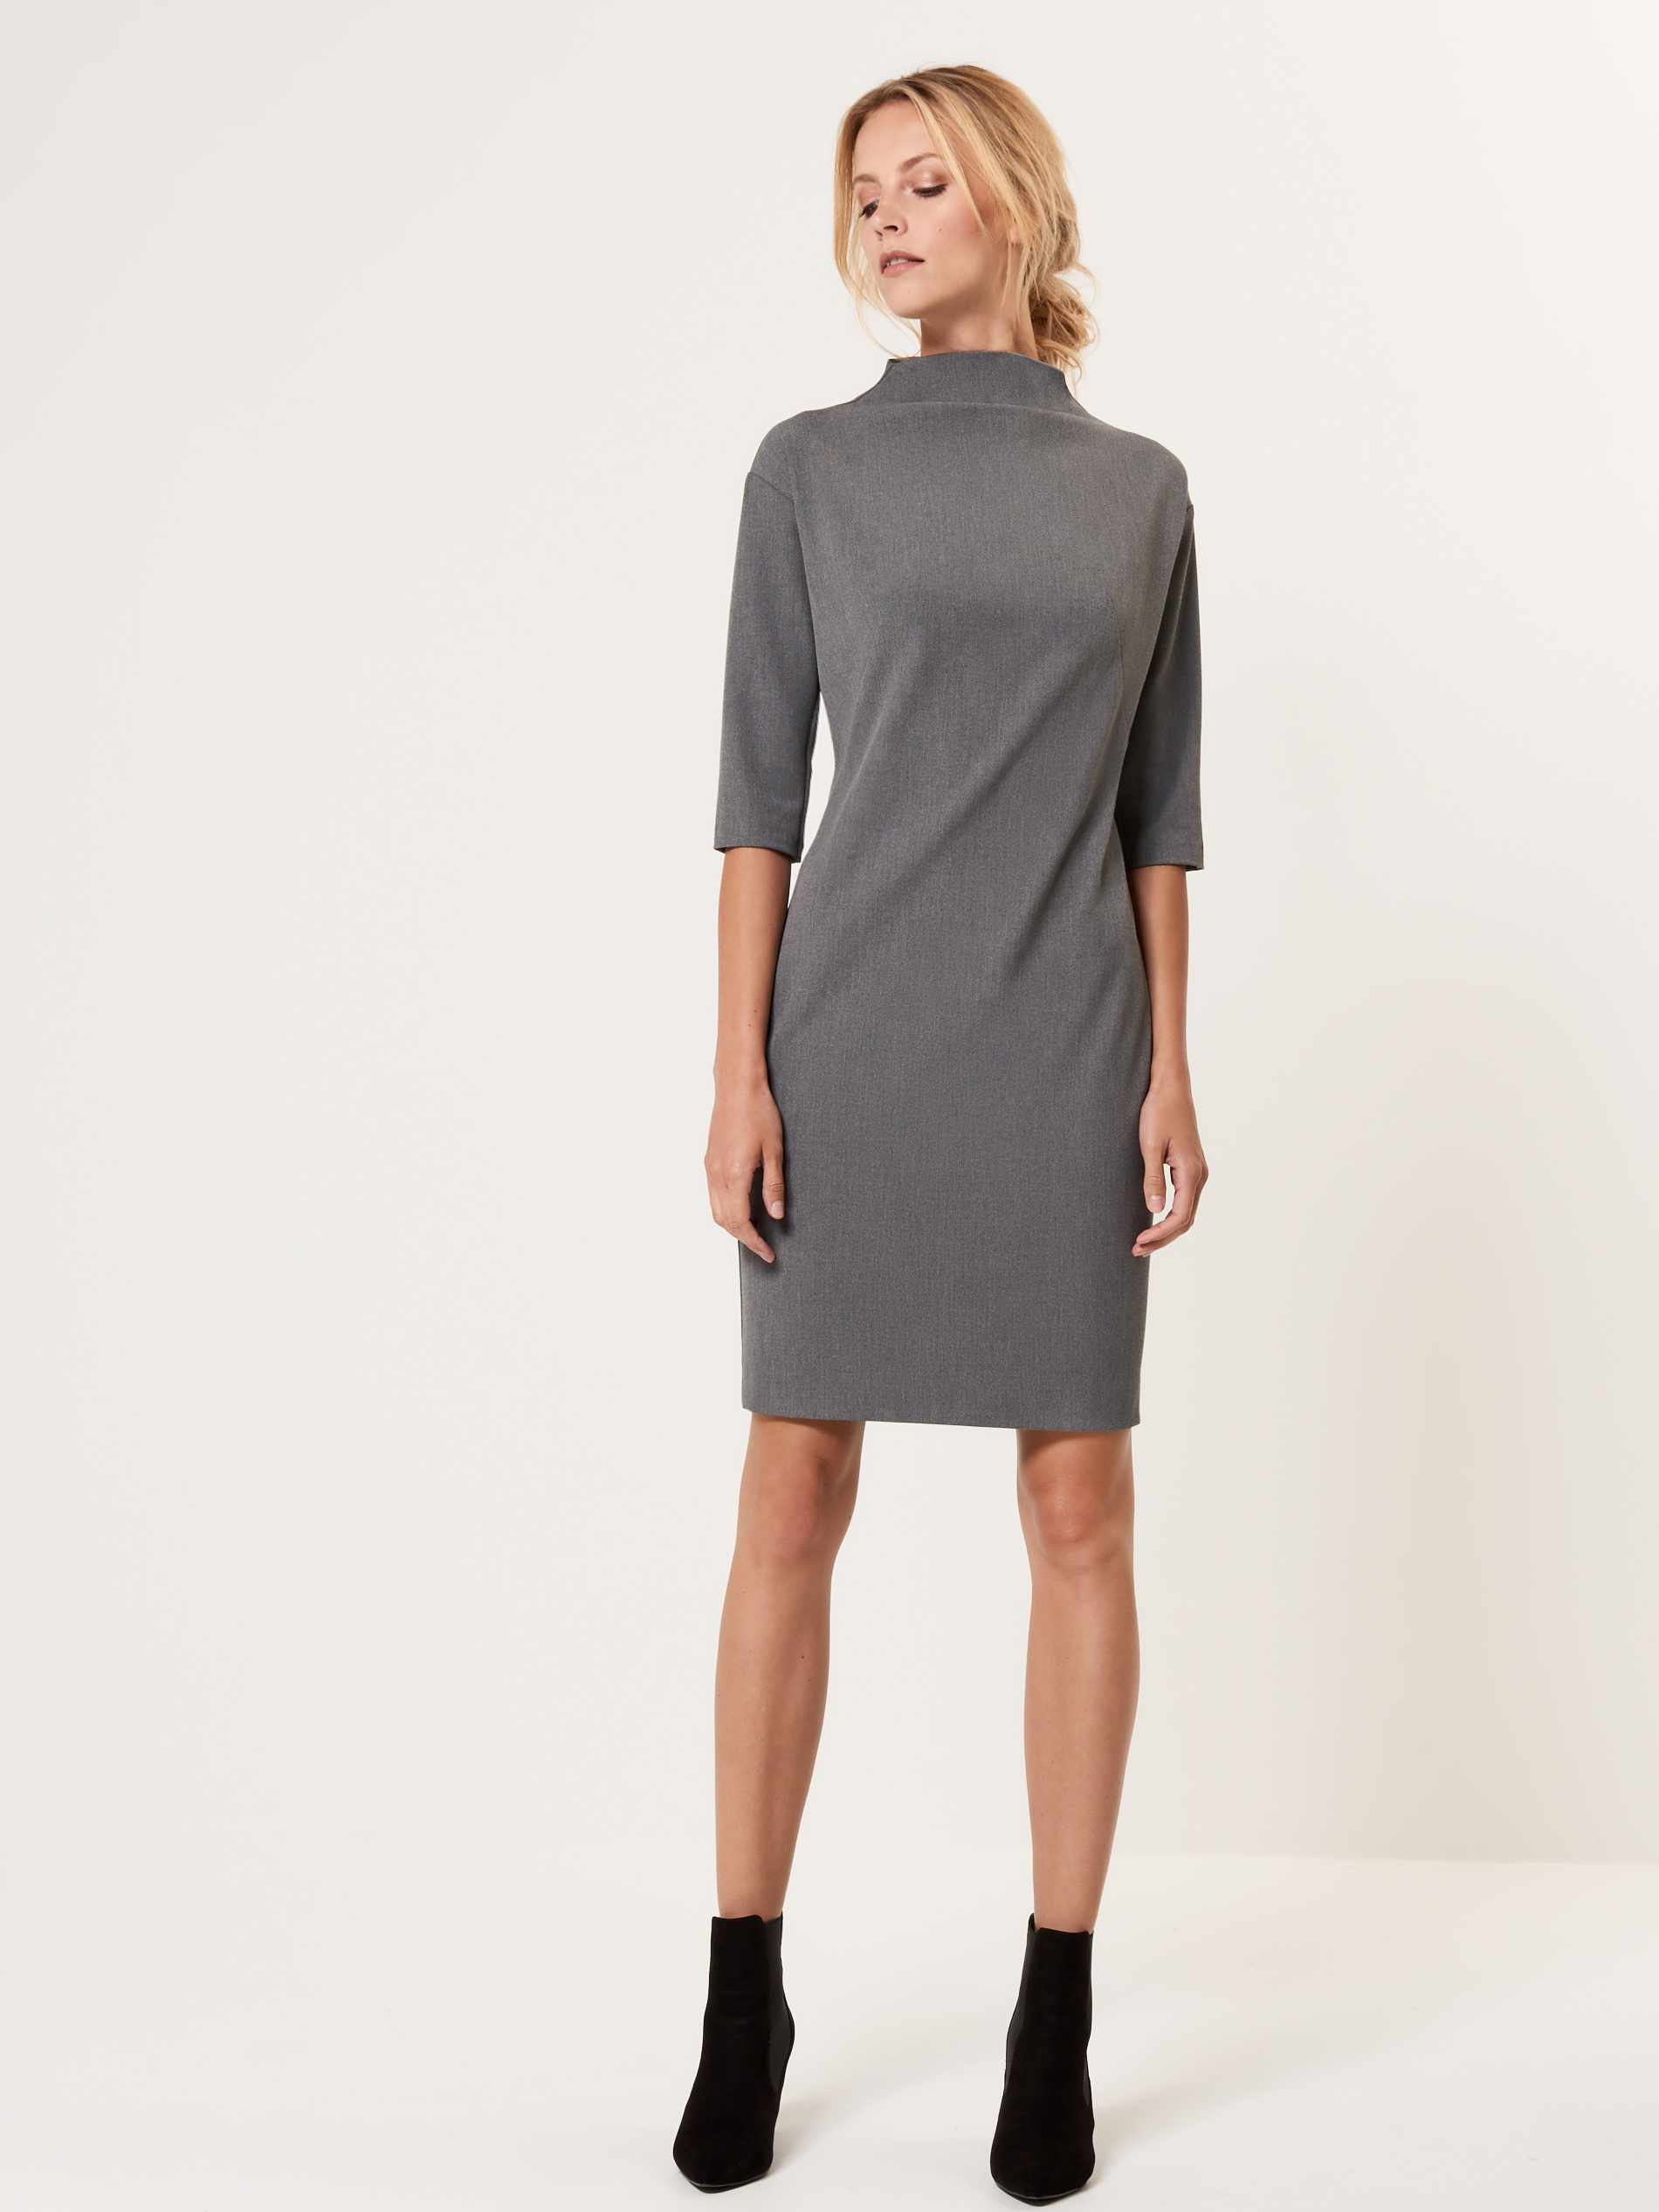 <a href='http://www.mohito.com/hu/hu/collection/all/dresses/sr738-90x/ladies-dress' target='_blank' rel='noopener noreferrer'>Mohito</a></p>